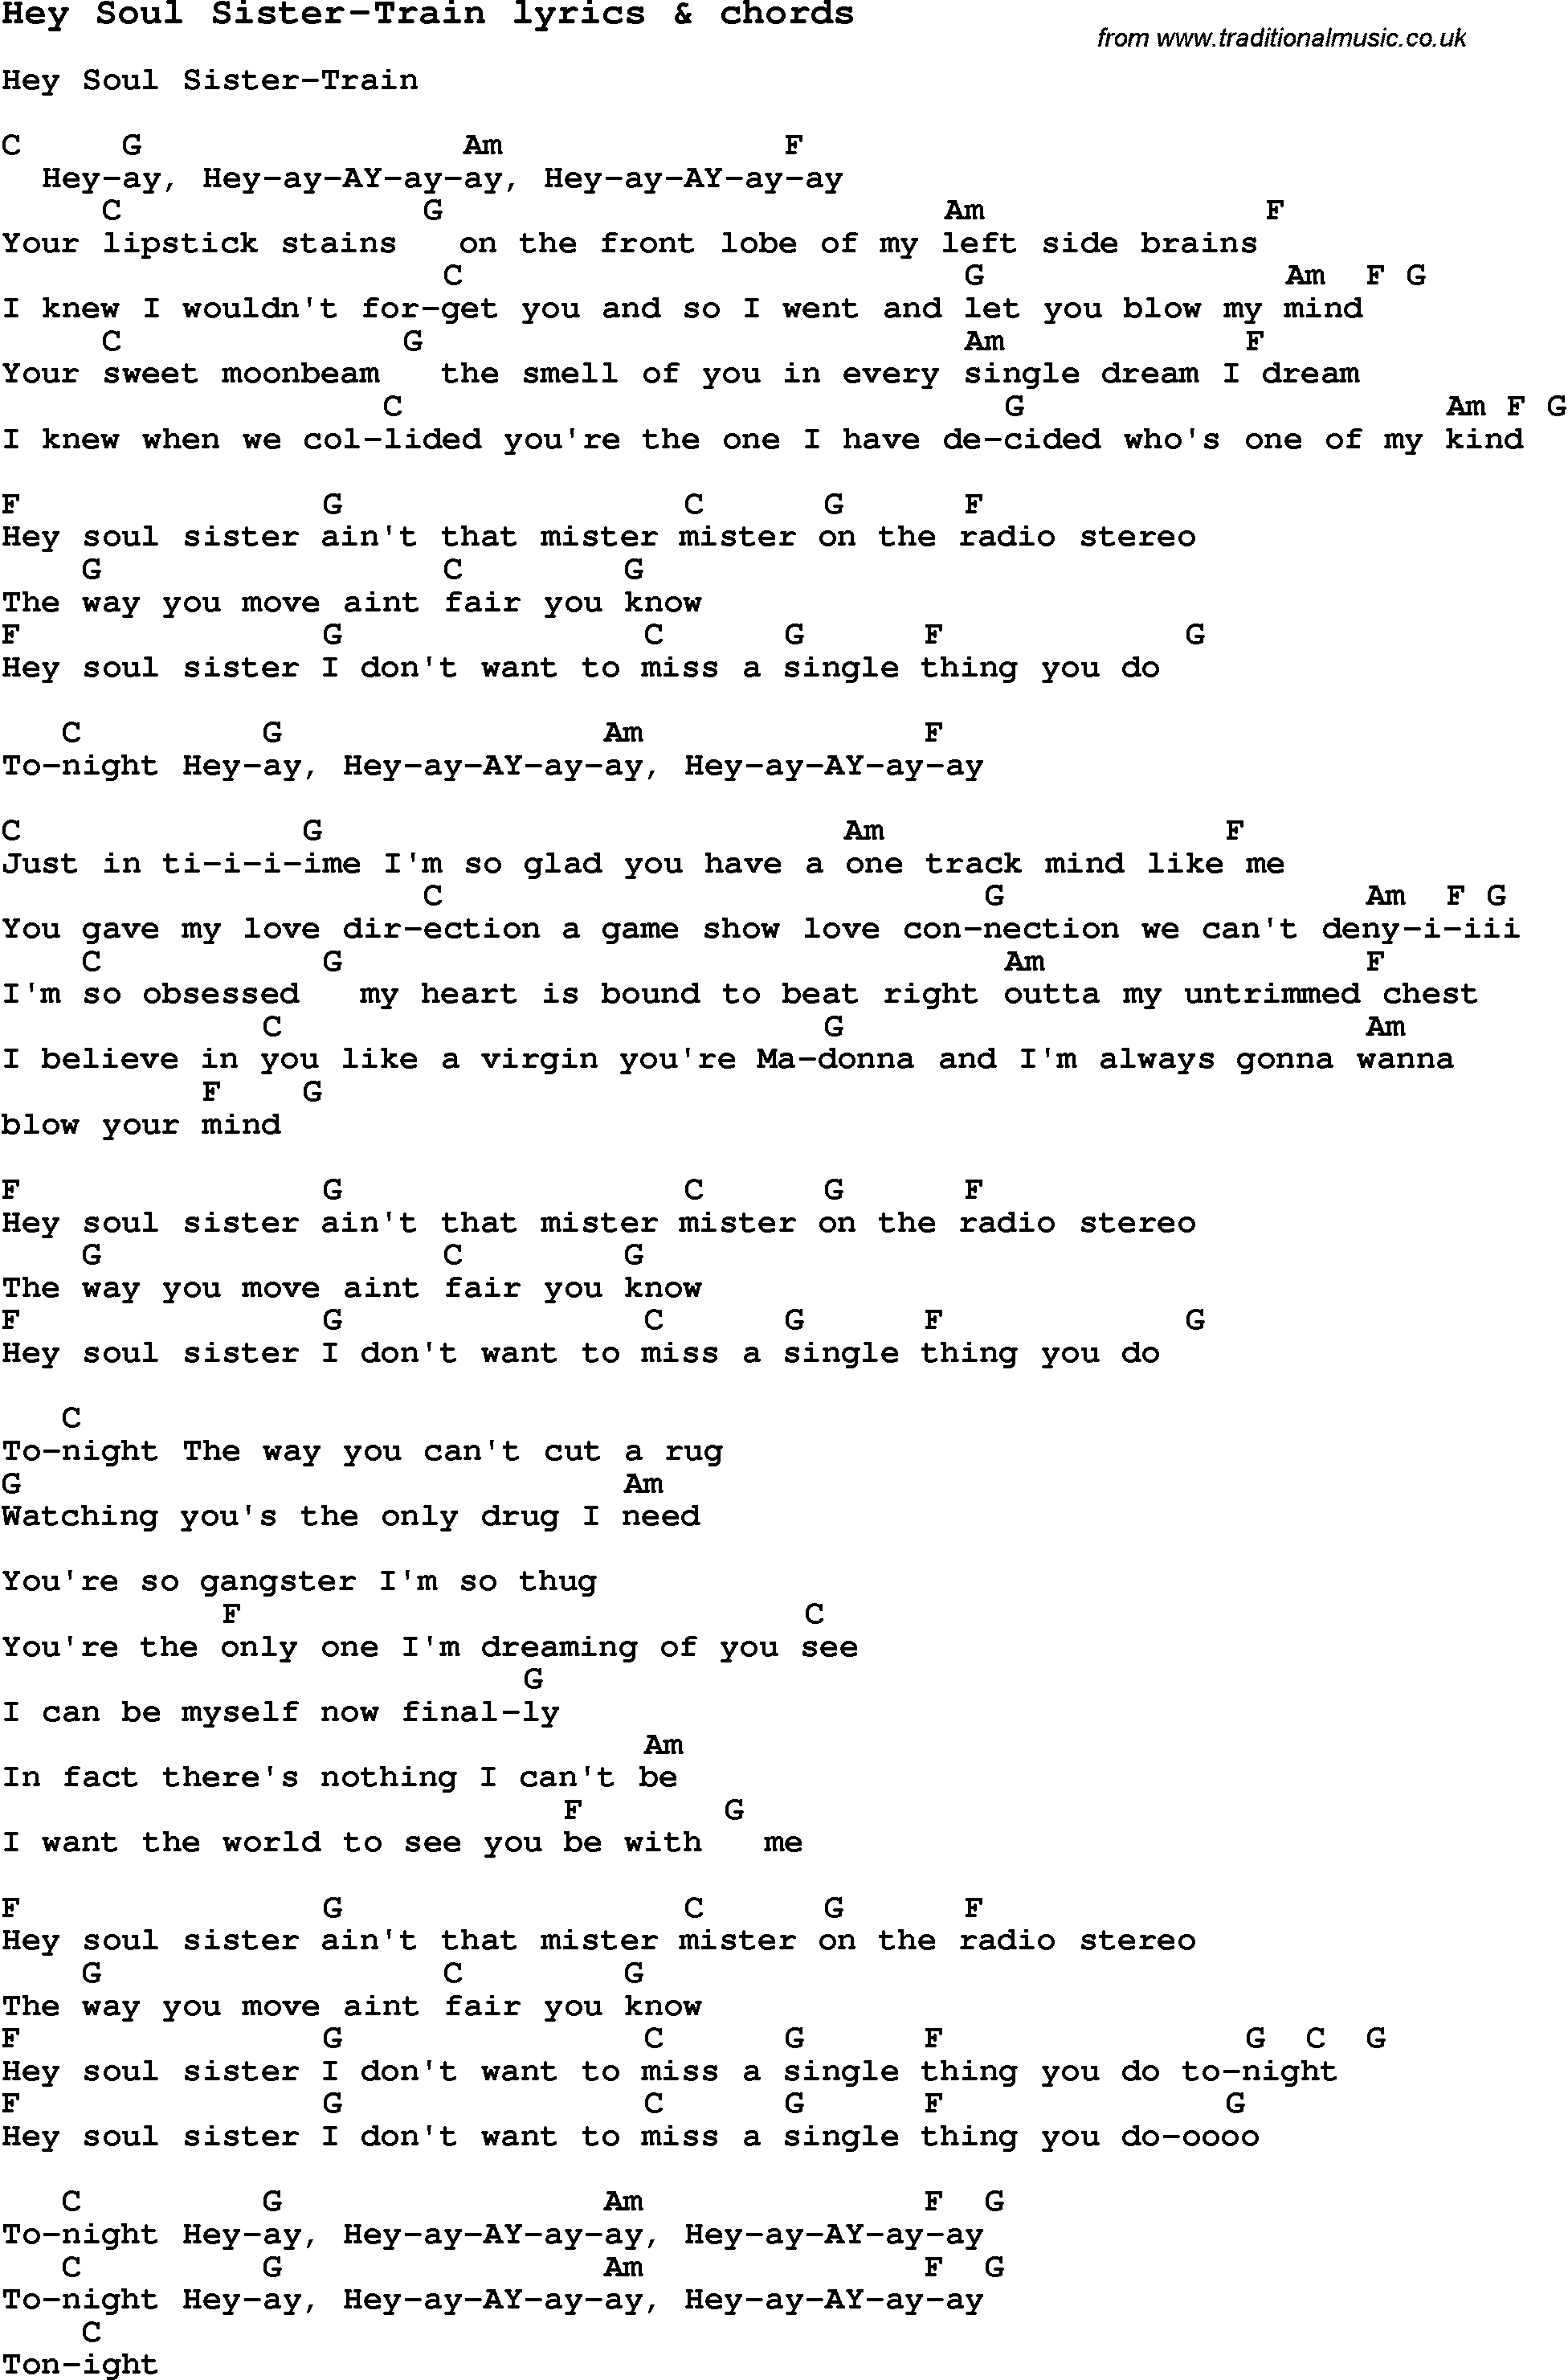 Love Song Lyrics For Hey Soul Sister Train With Chords For Ukulele